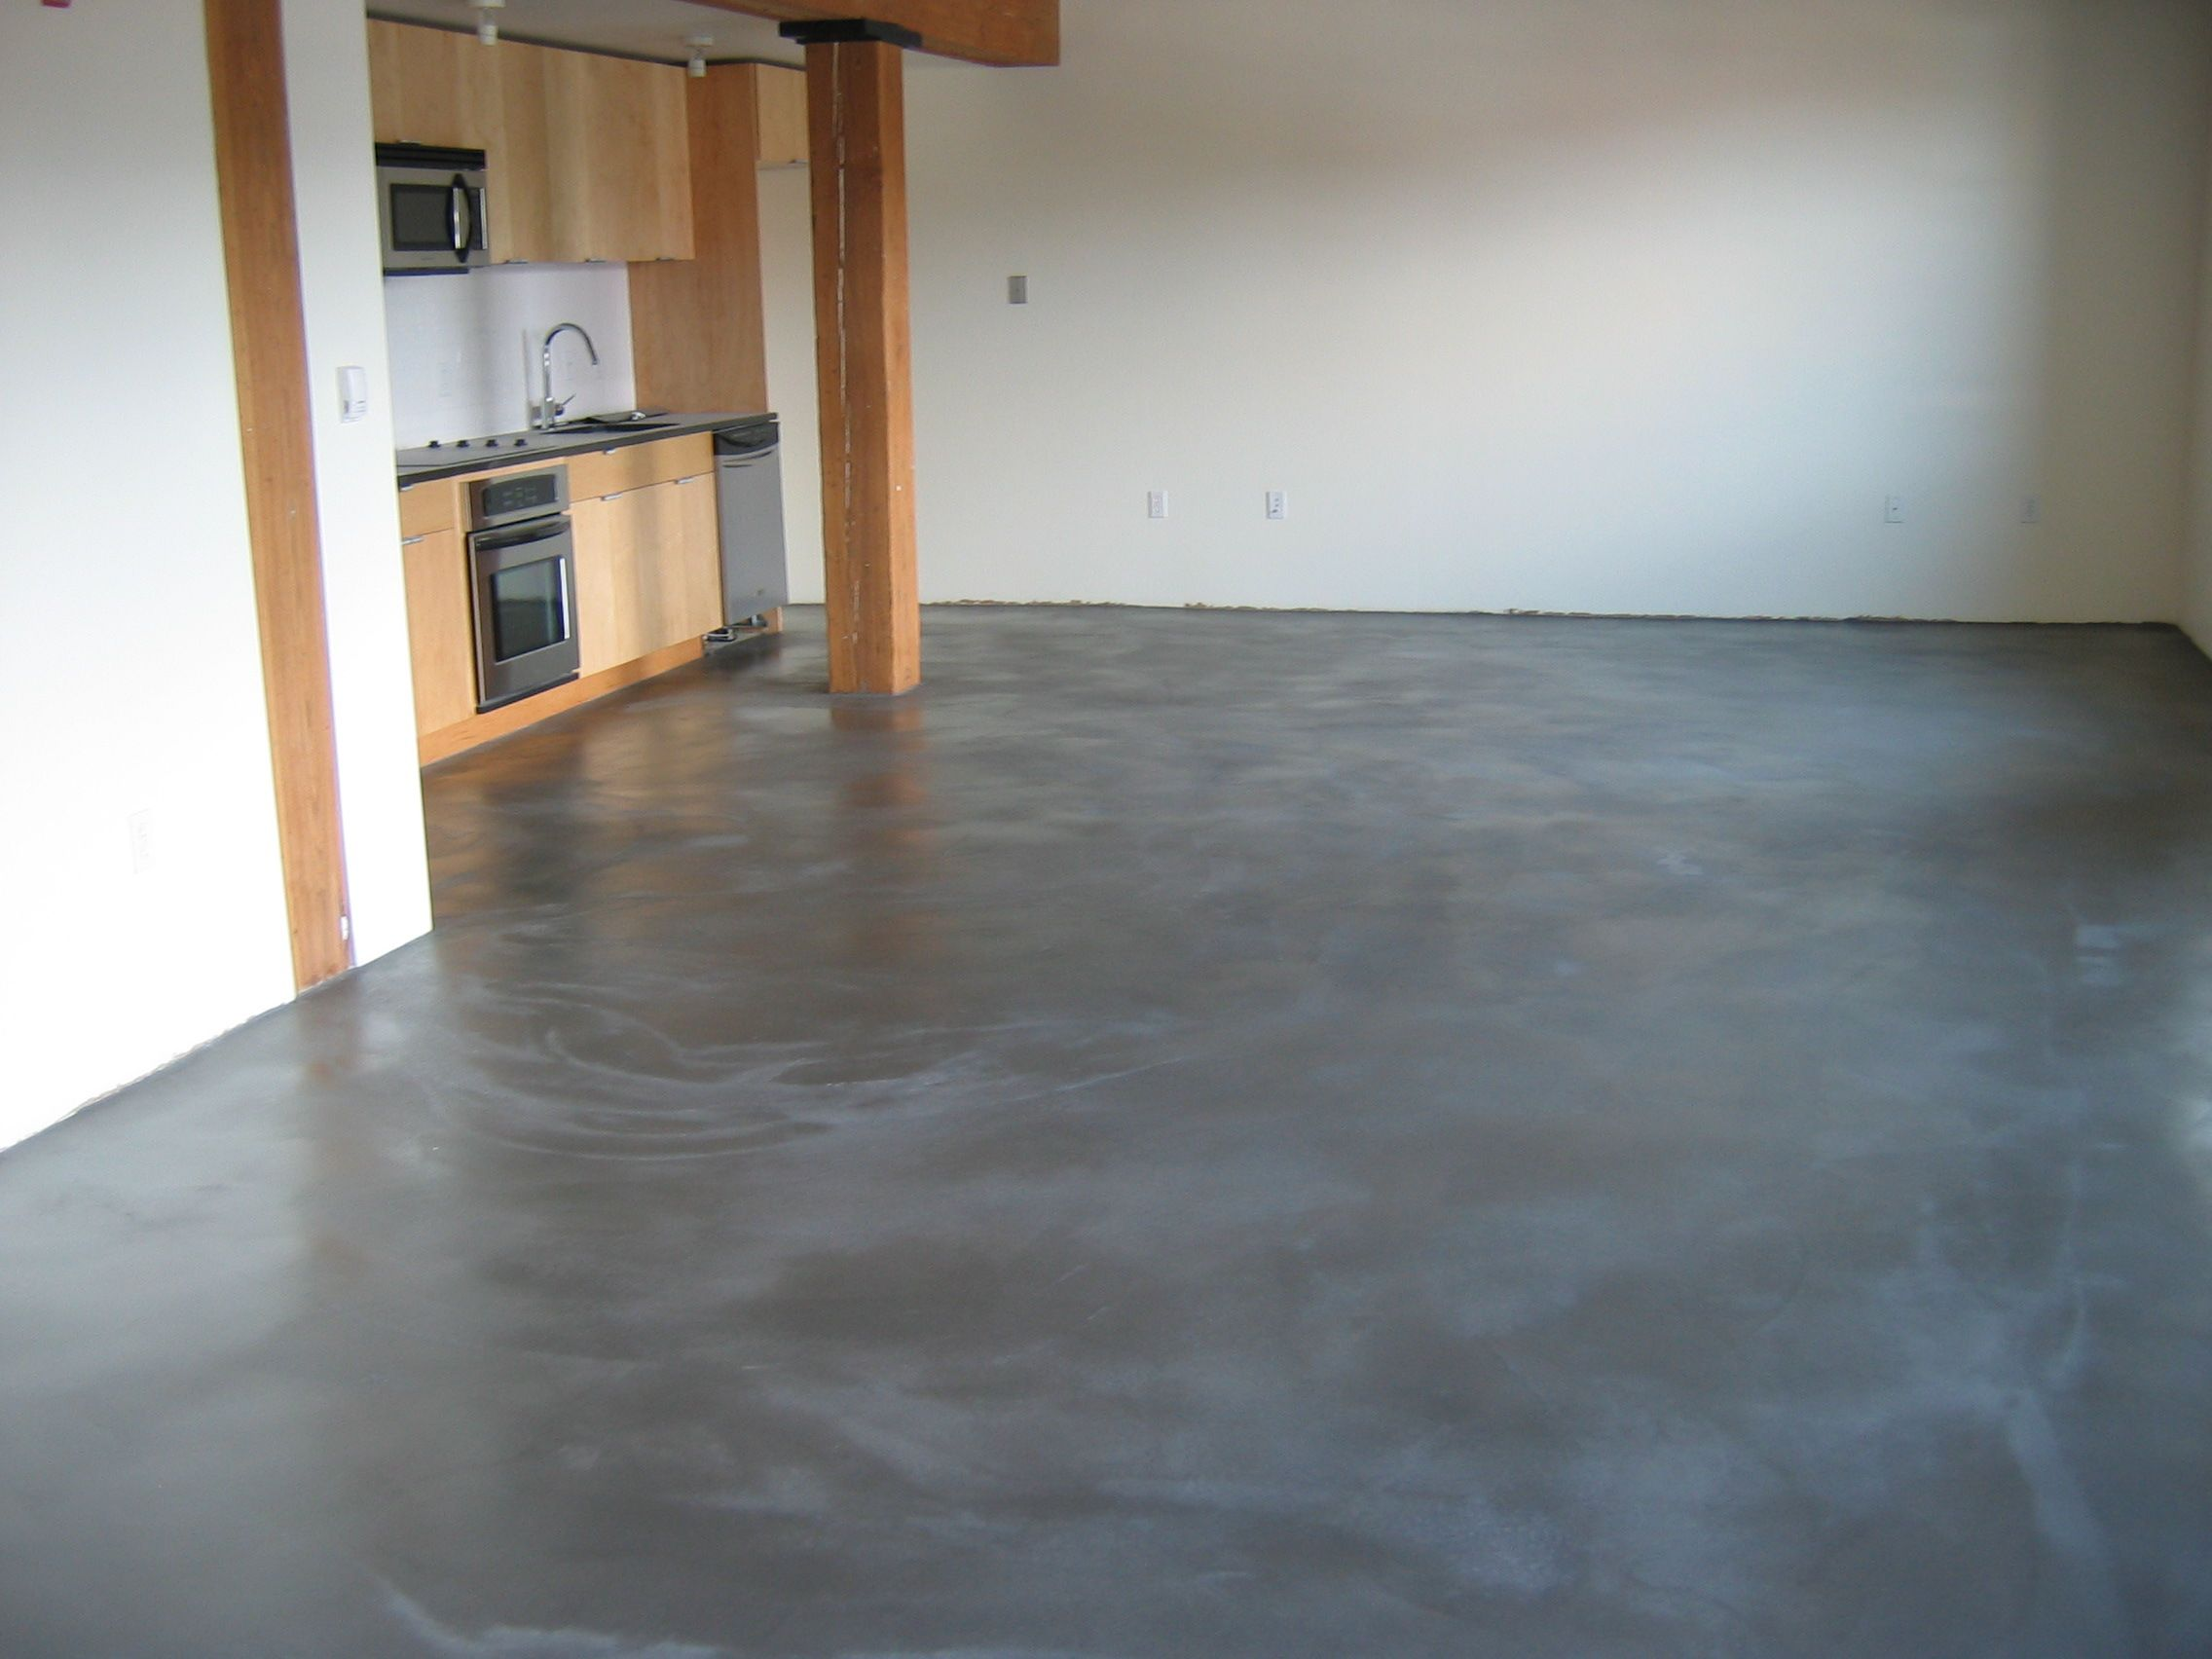 Polished Concrete Floor Kitchen Poured Concrete Floors Concrete Polishing Concrete Floor